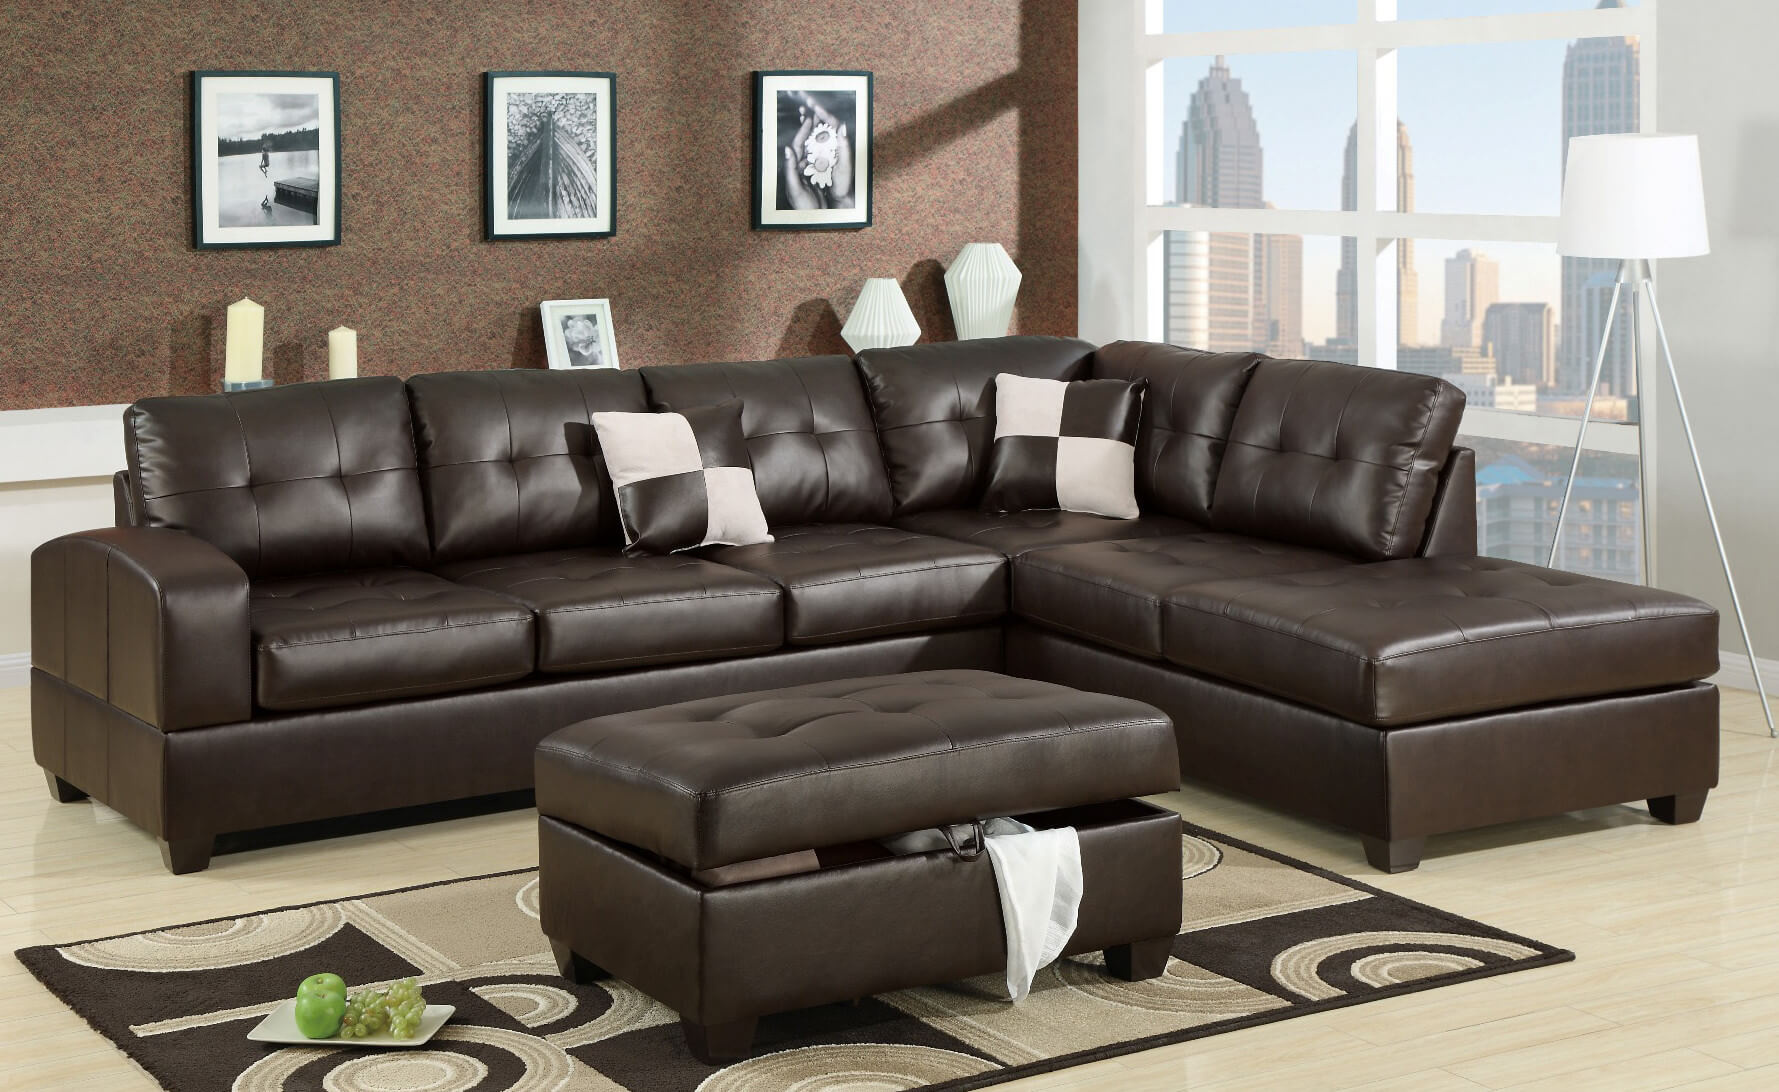 Best Affordable Sofa affordable sofa and this cheap leather home sofas with pillows This Elegantly Modern Piece Is Crafted With Bonded Leather